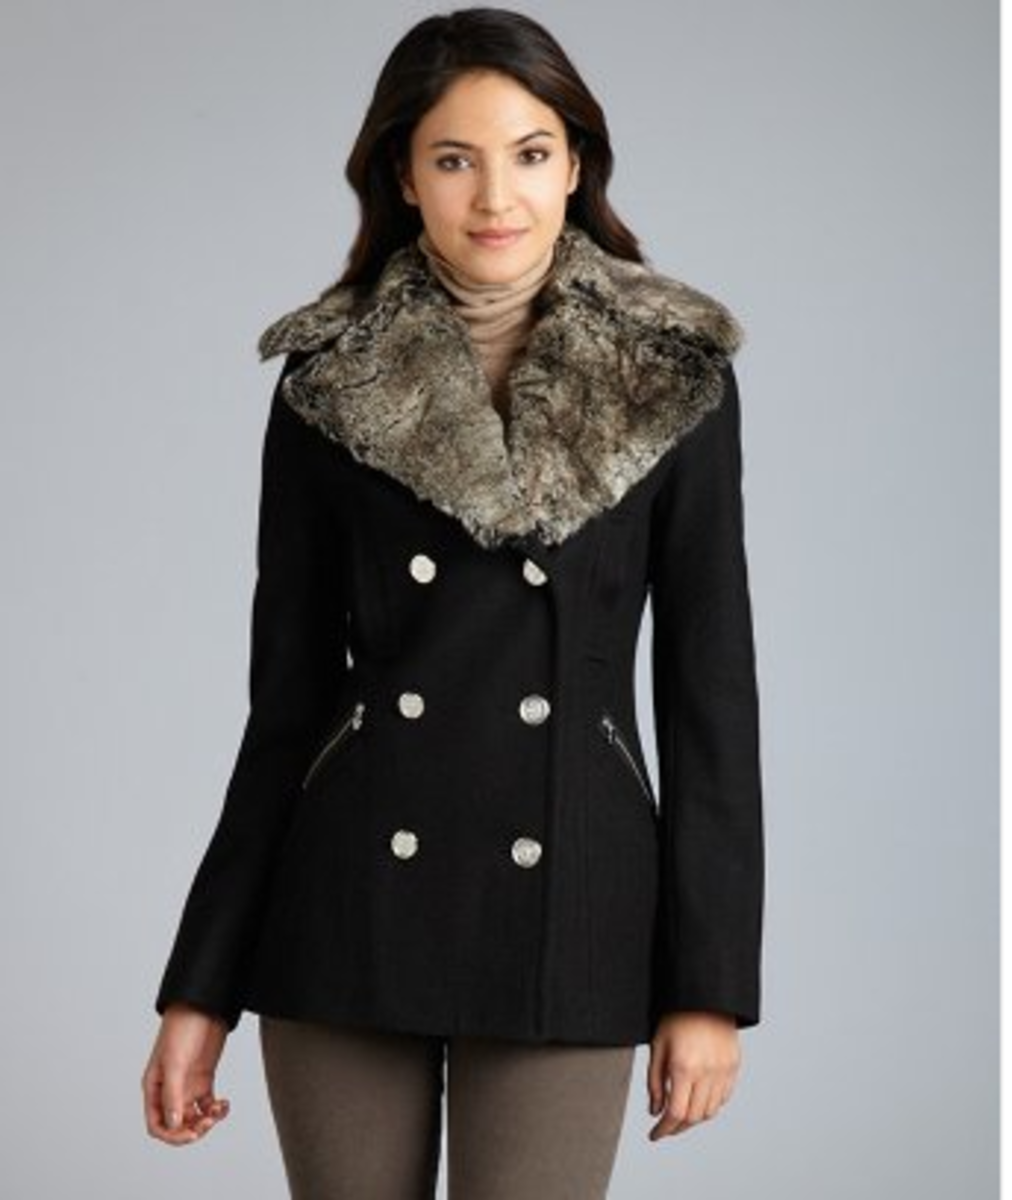 Laundry by Shelli Segal, Double Breasted Faux Fur Trimmed Jacket, Black Wool, Bluefly.com